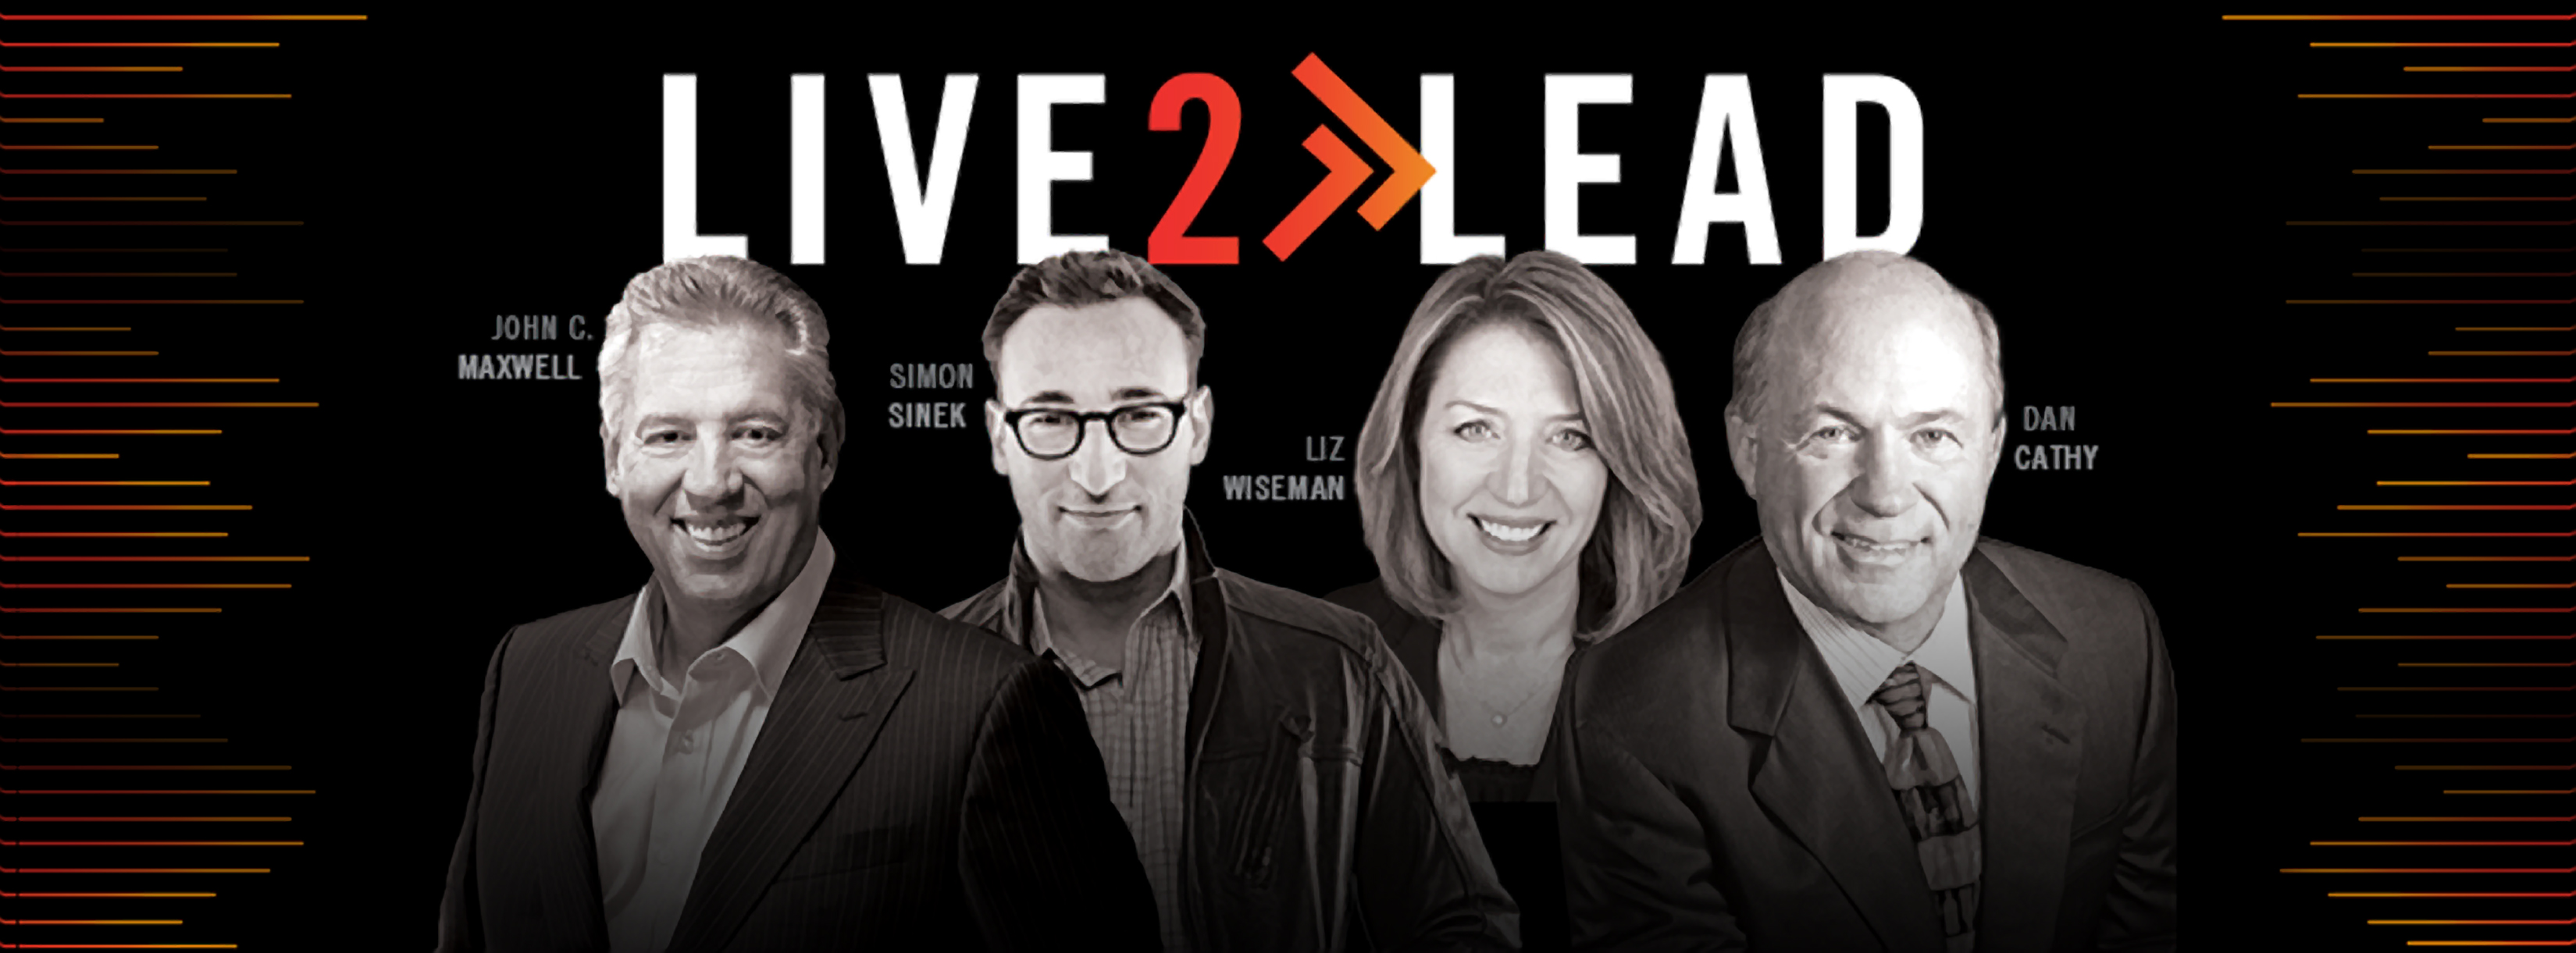 Live2Lead Speakers 2016